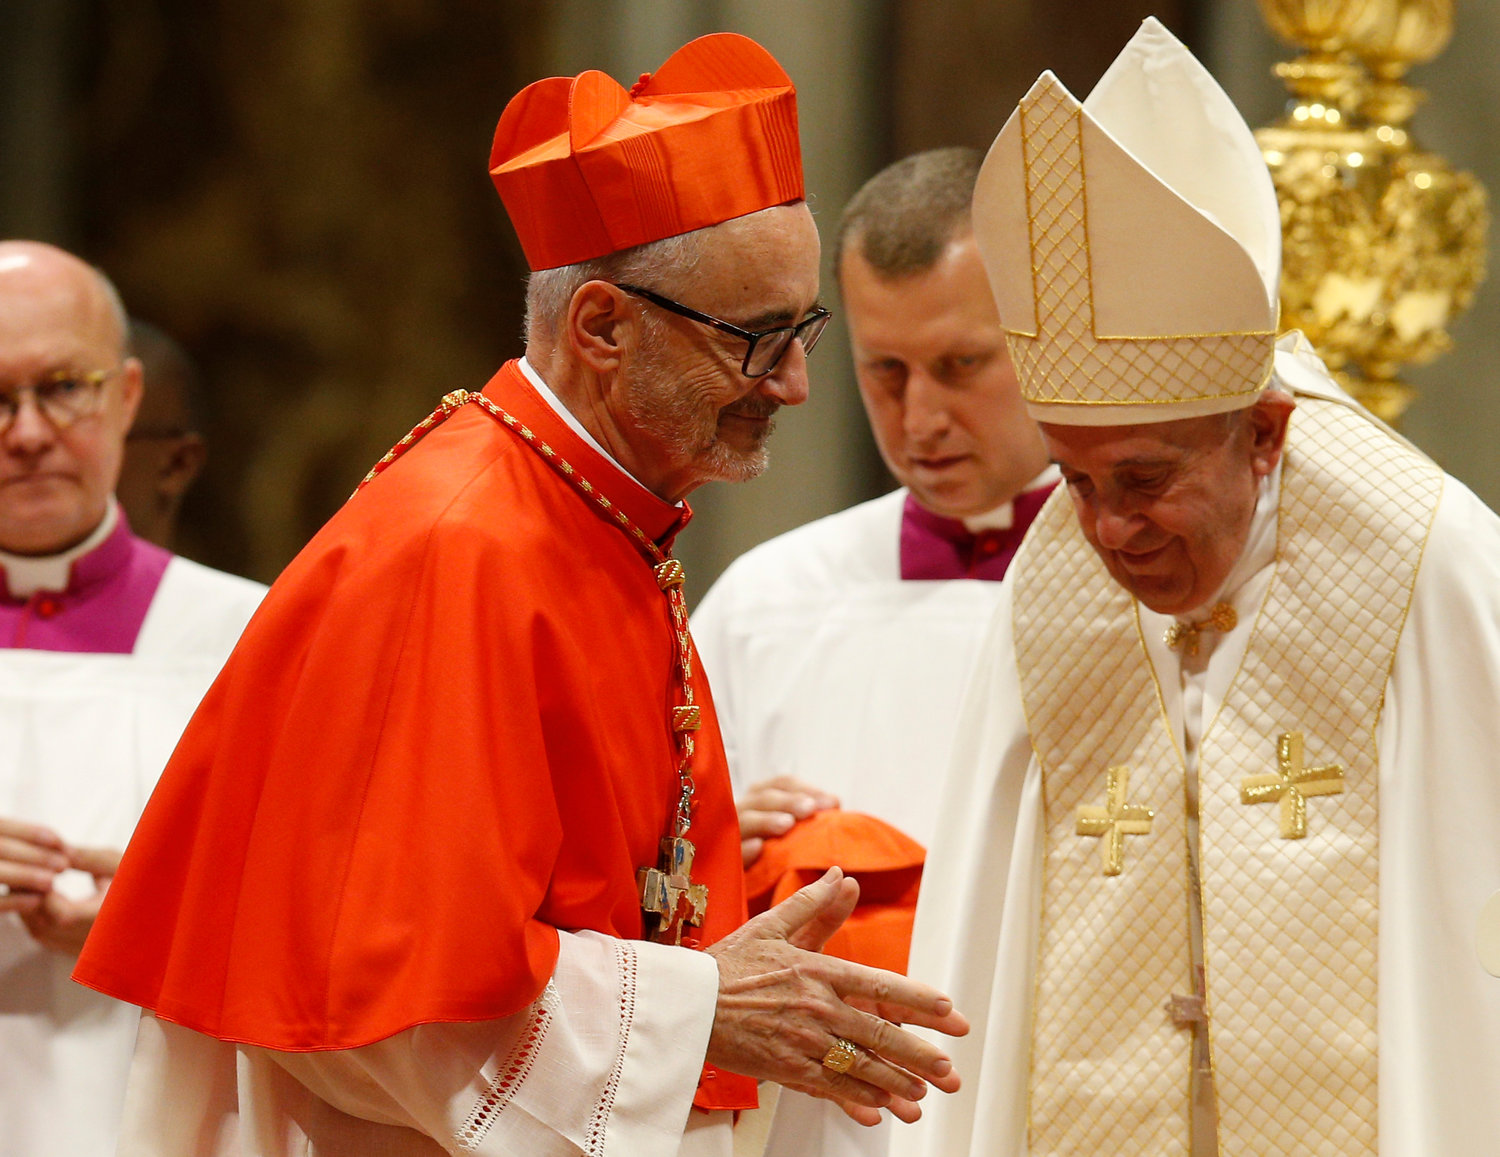 New Canadian Cardinal Michael Czerny arrives for a consistory led by Pope Francis for the creation of 13 new cardinals in St. Peter's Basilica at the Vatican Oct. 5, 2019.